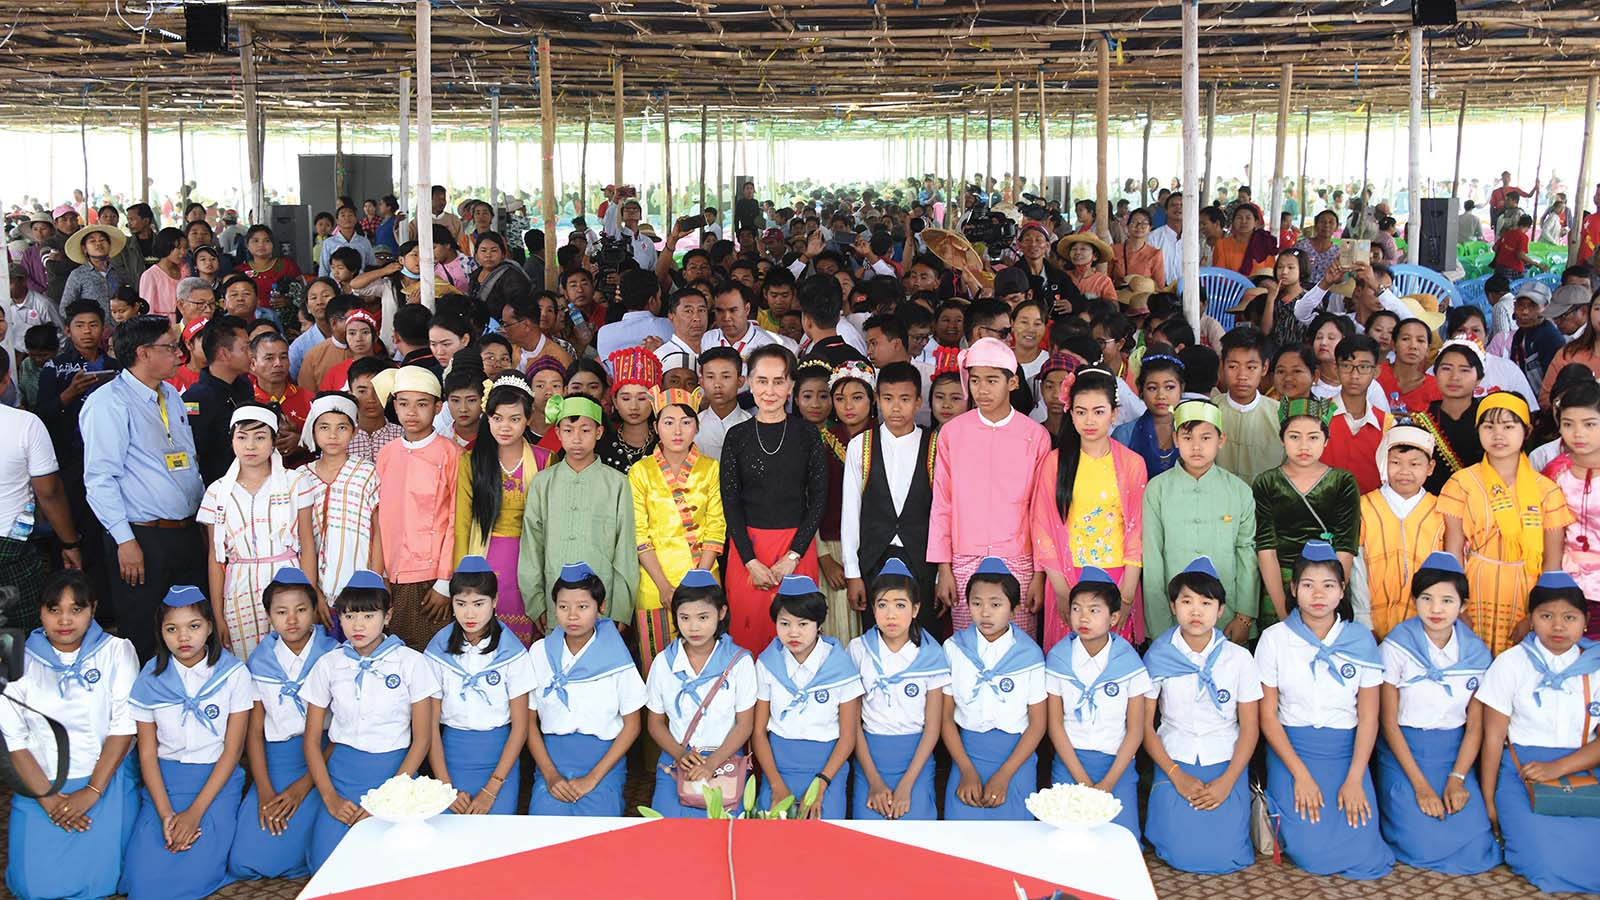 State Counsellor Daw Aung San Suu Kyi poses for the documentary photo with children at the meeting with locals in Dabayin.Photo: MNA